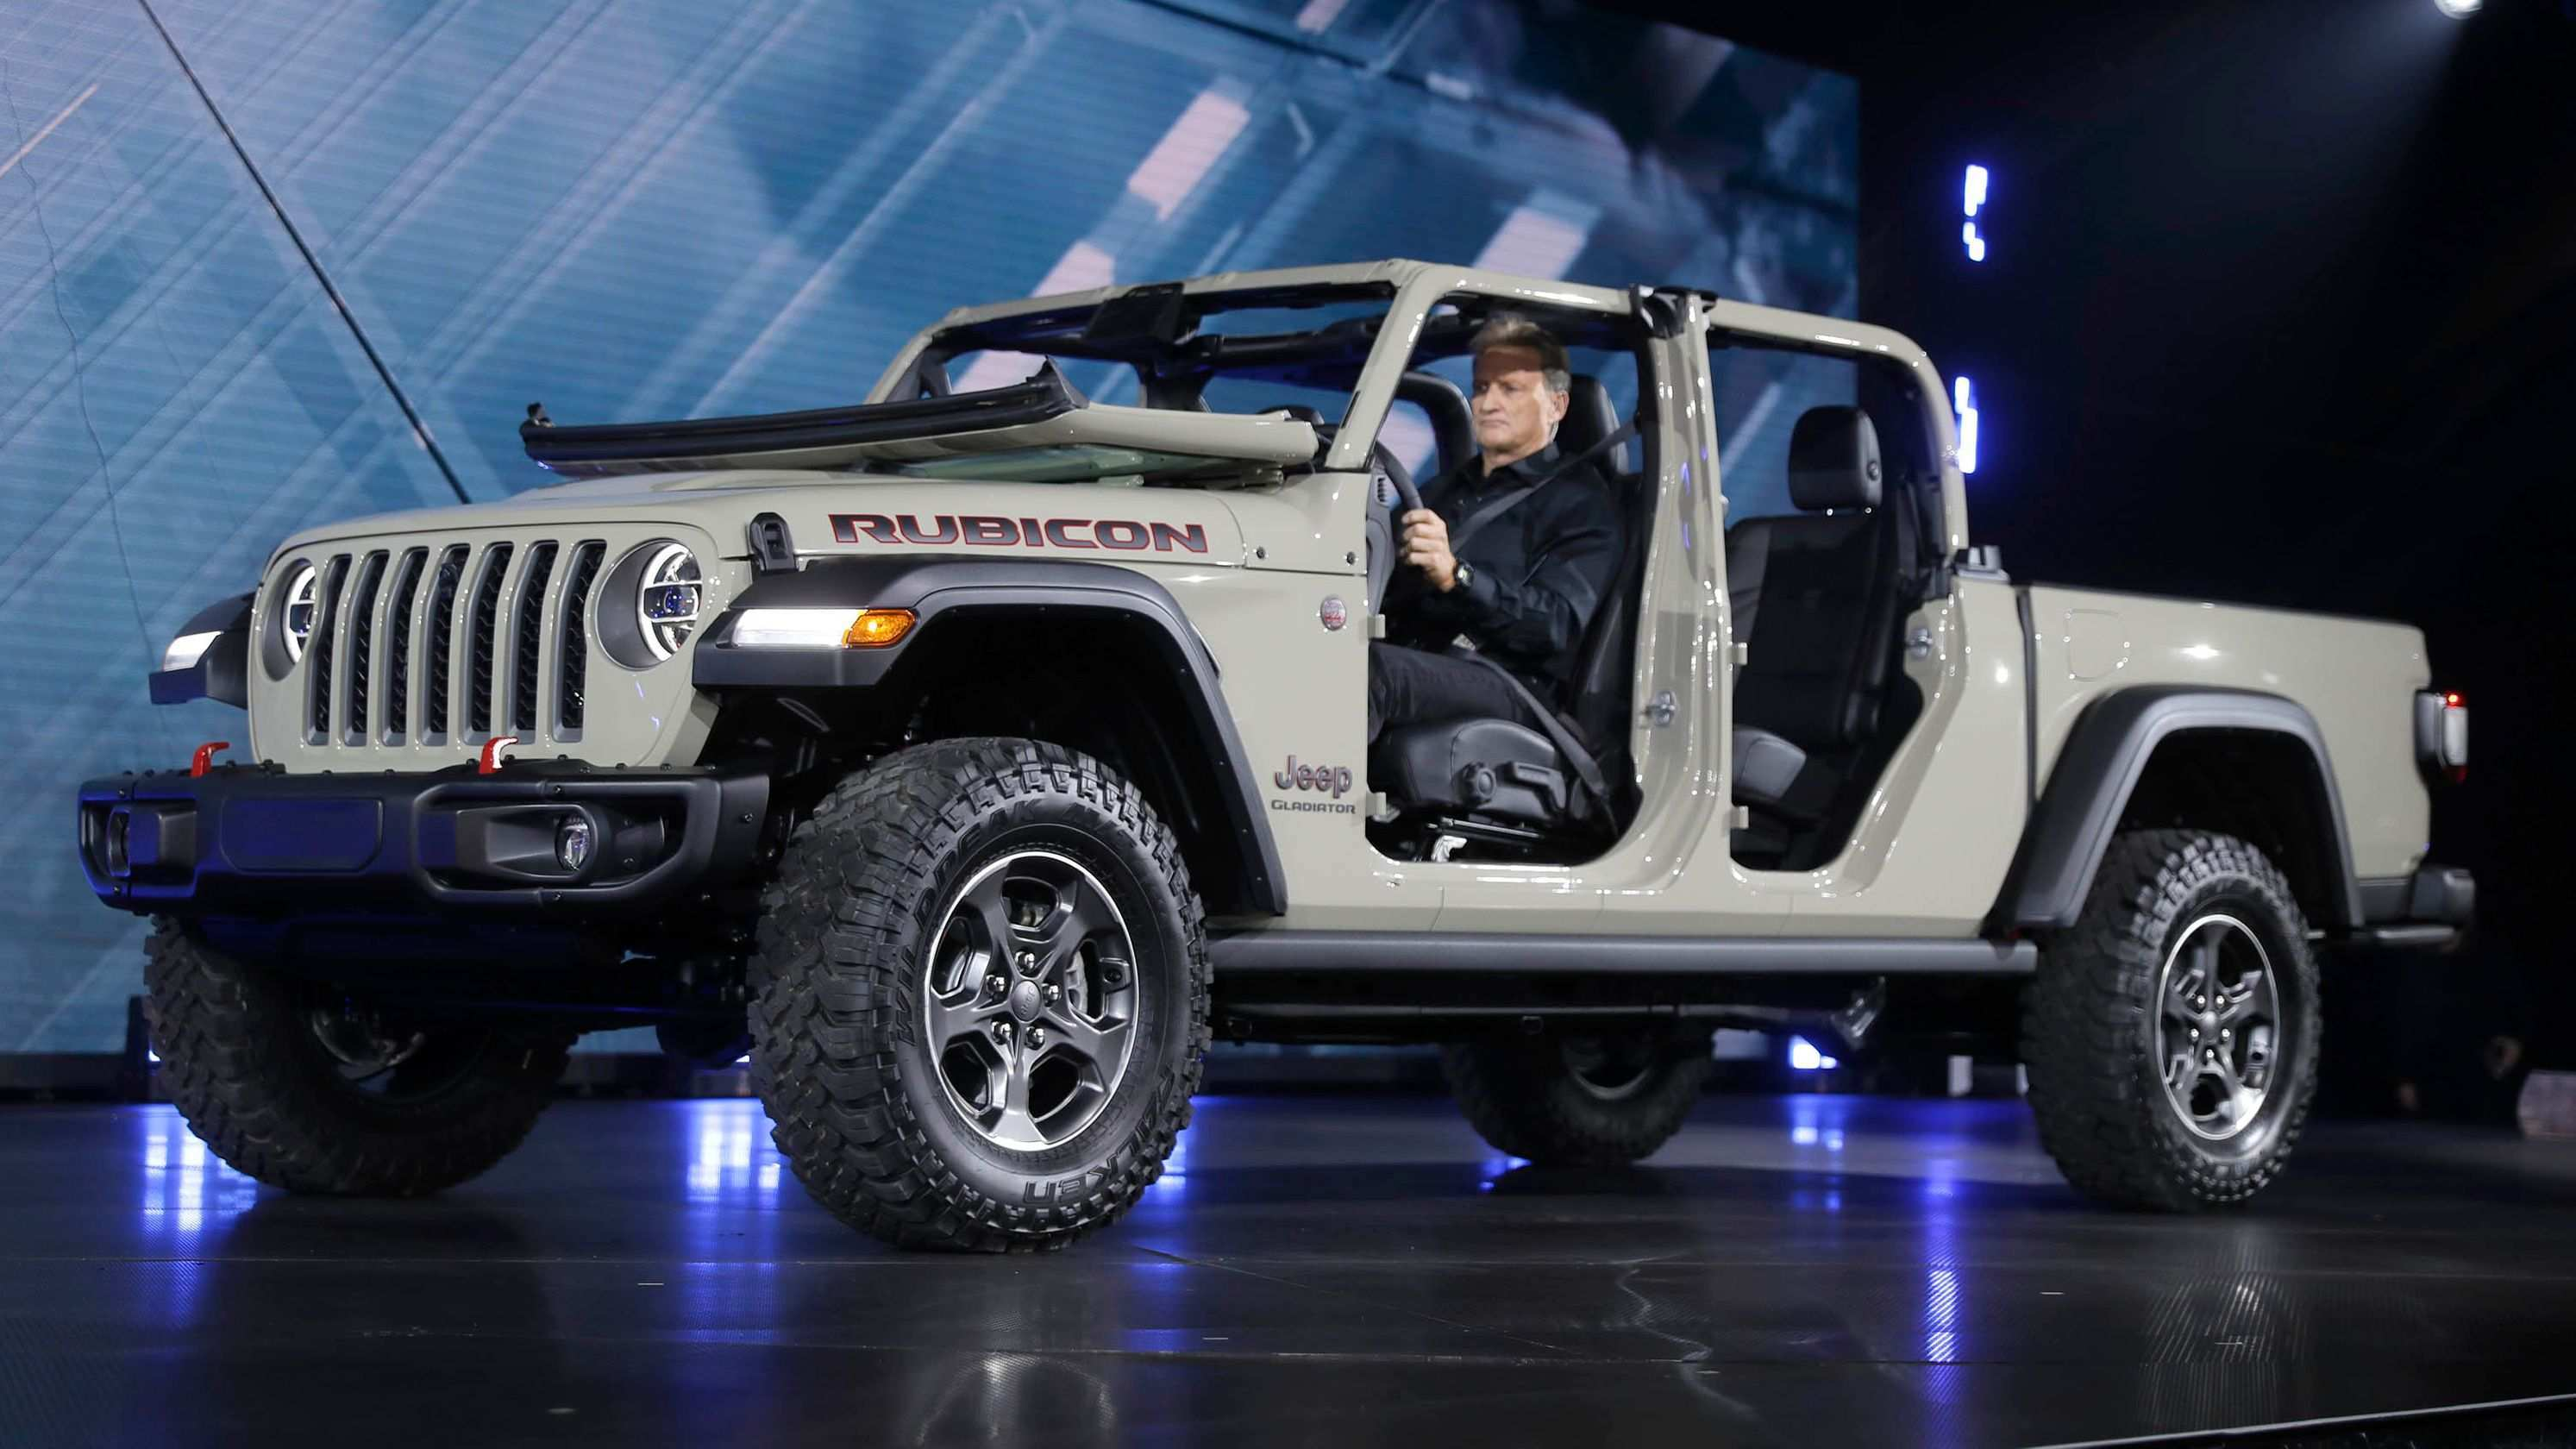 39 Gallery of 2019 Jeep 4 Door Truck Images with 2019 Jeep 4 Door Truck